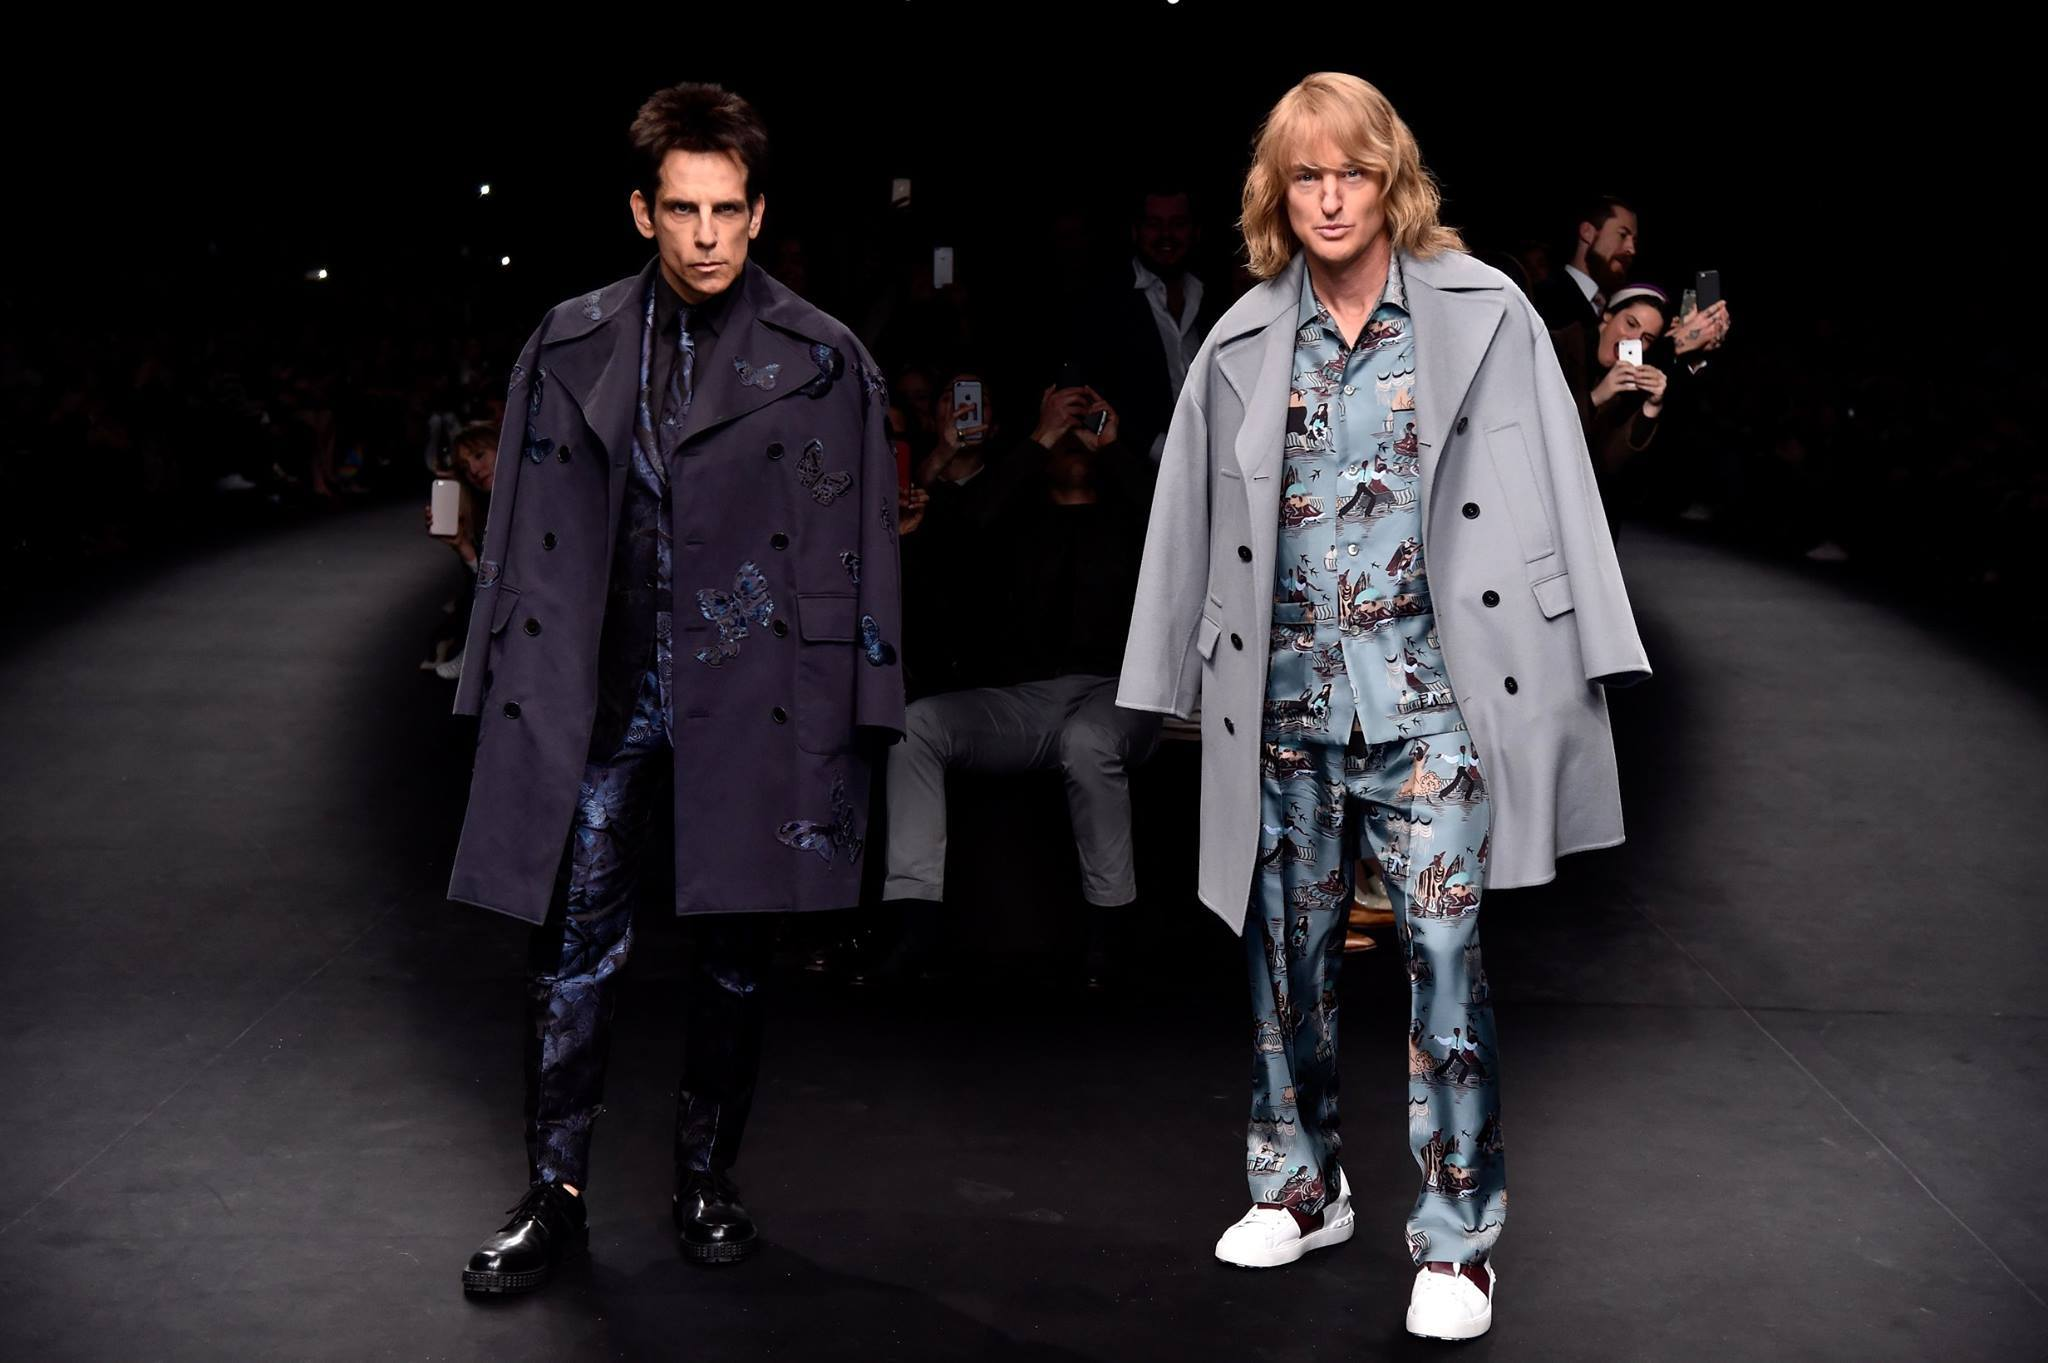 Derek Zoolander and Hansel walk the Valentino Runway